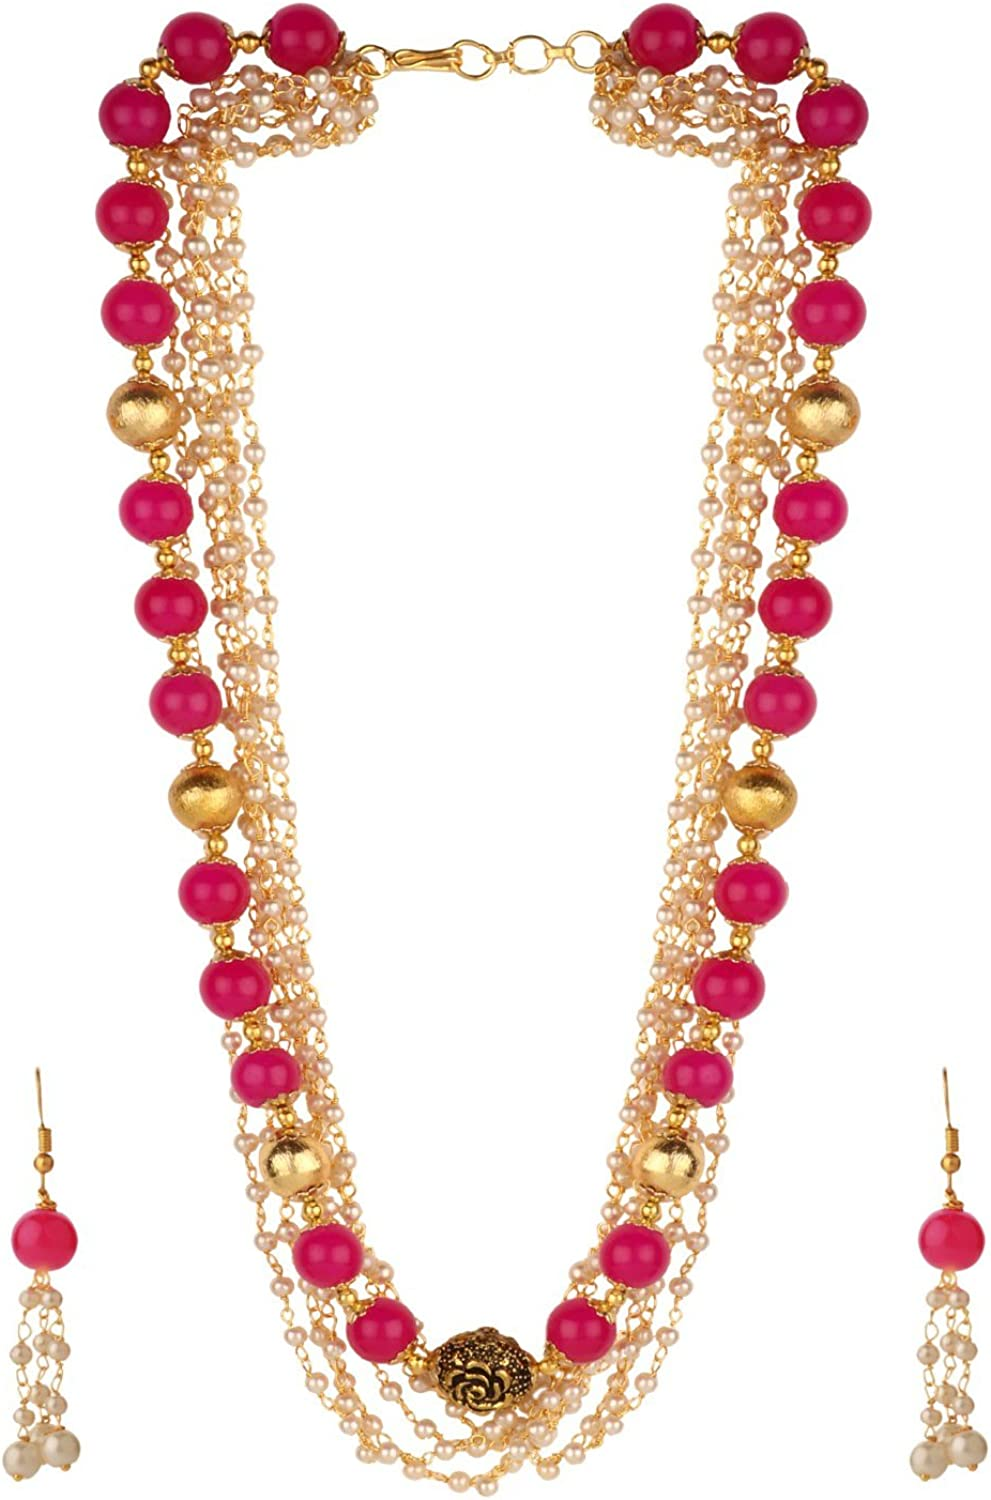 Efulgenz Indian 14 K Gold Plated Layered Multicolor Faux Ruby Emerald Pearl Beads Strand Neckalce Earrings Set Fashion Costume Jewelry